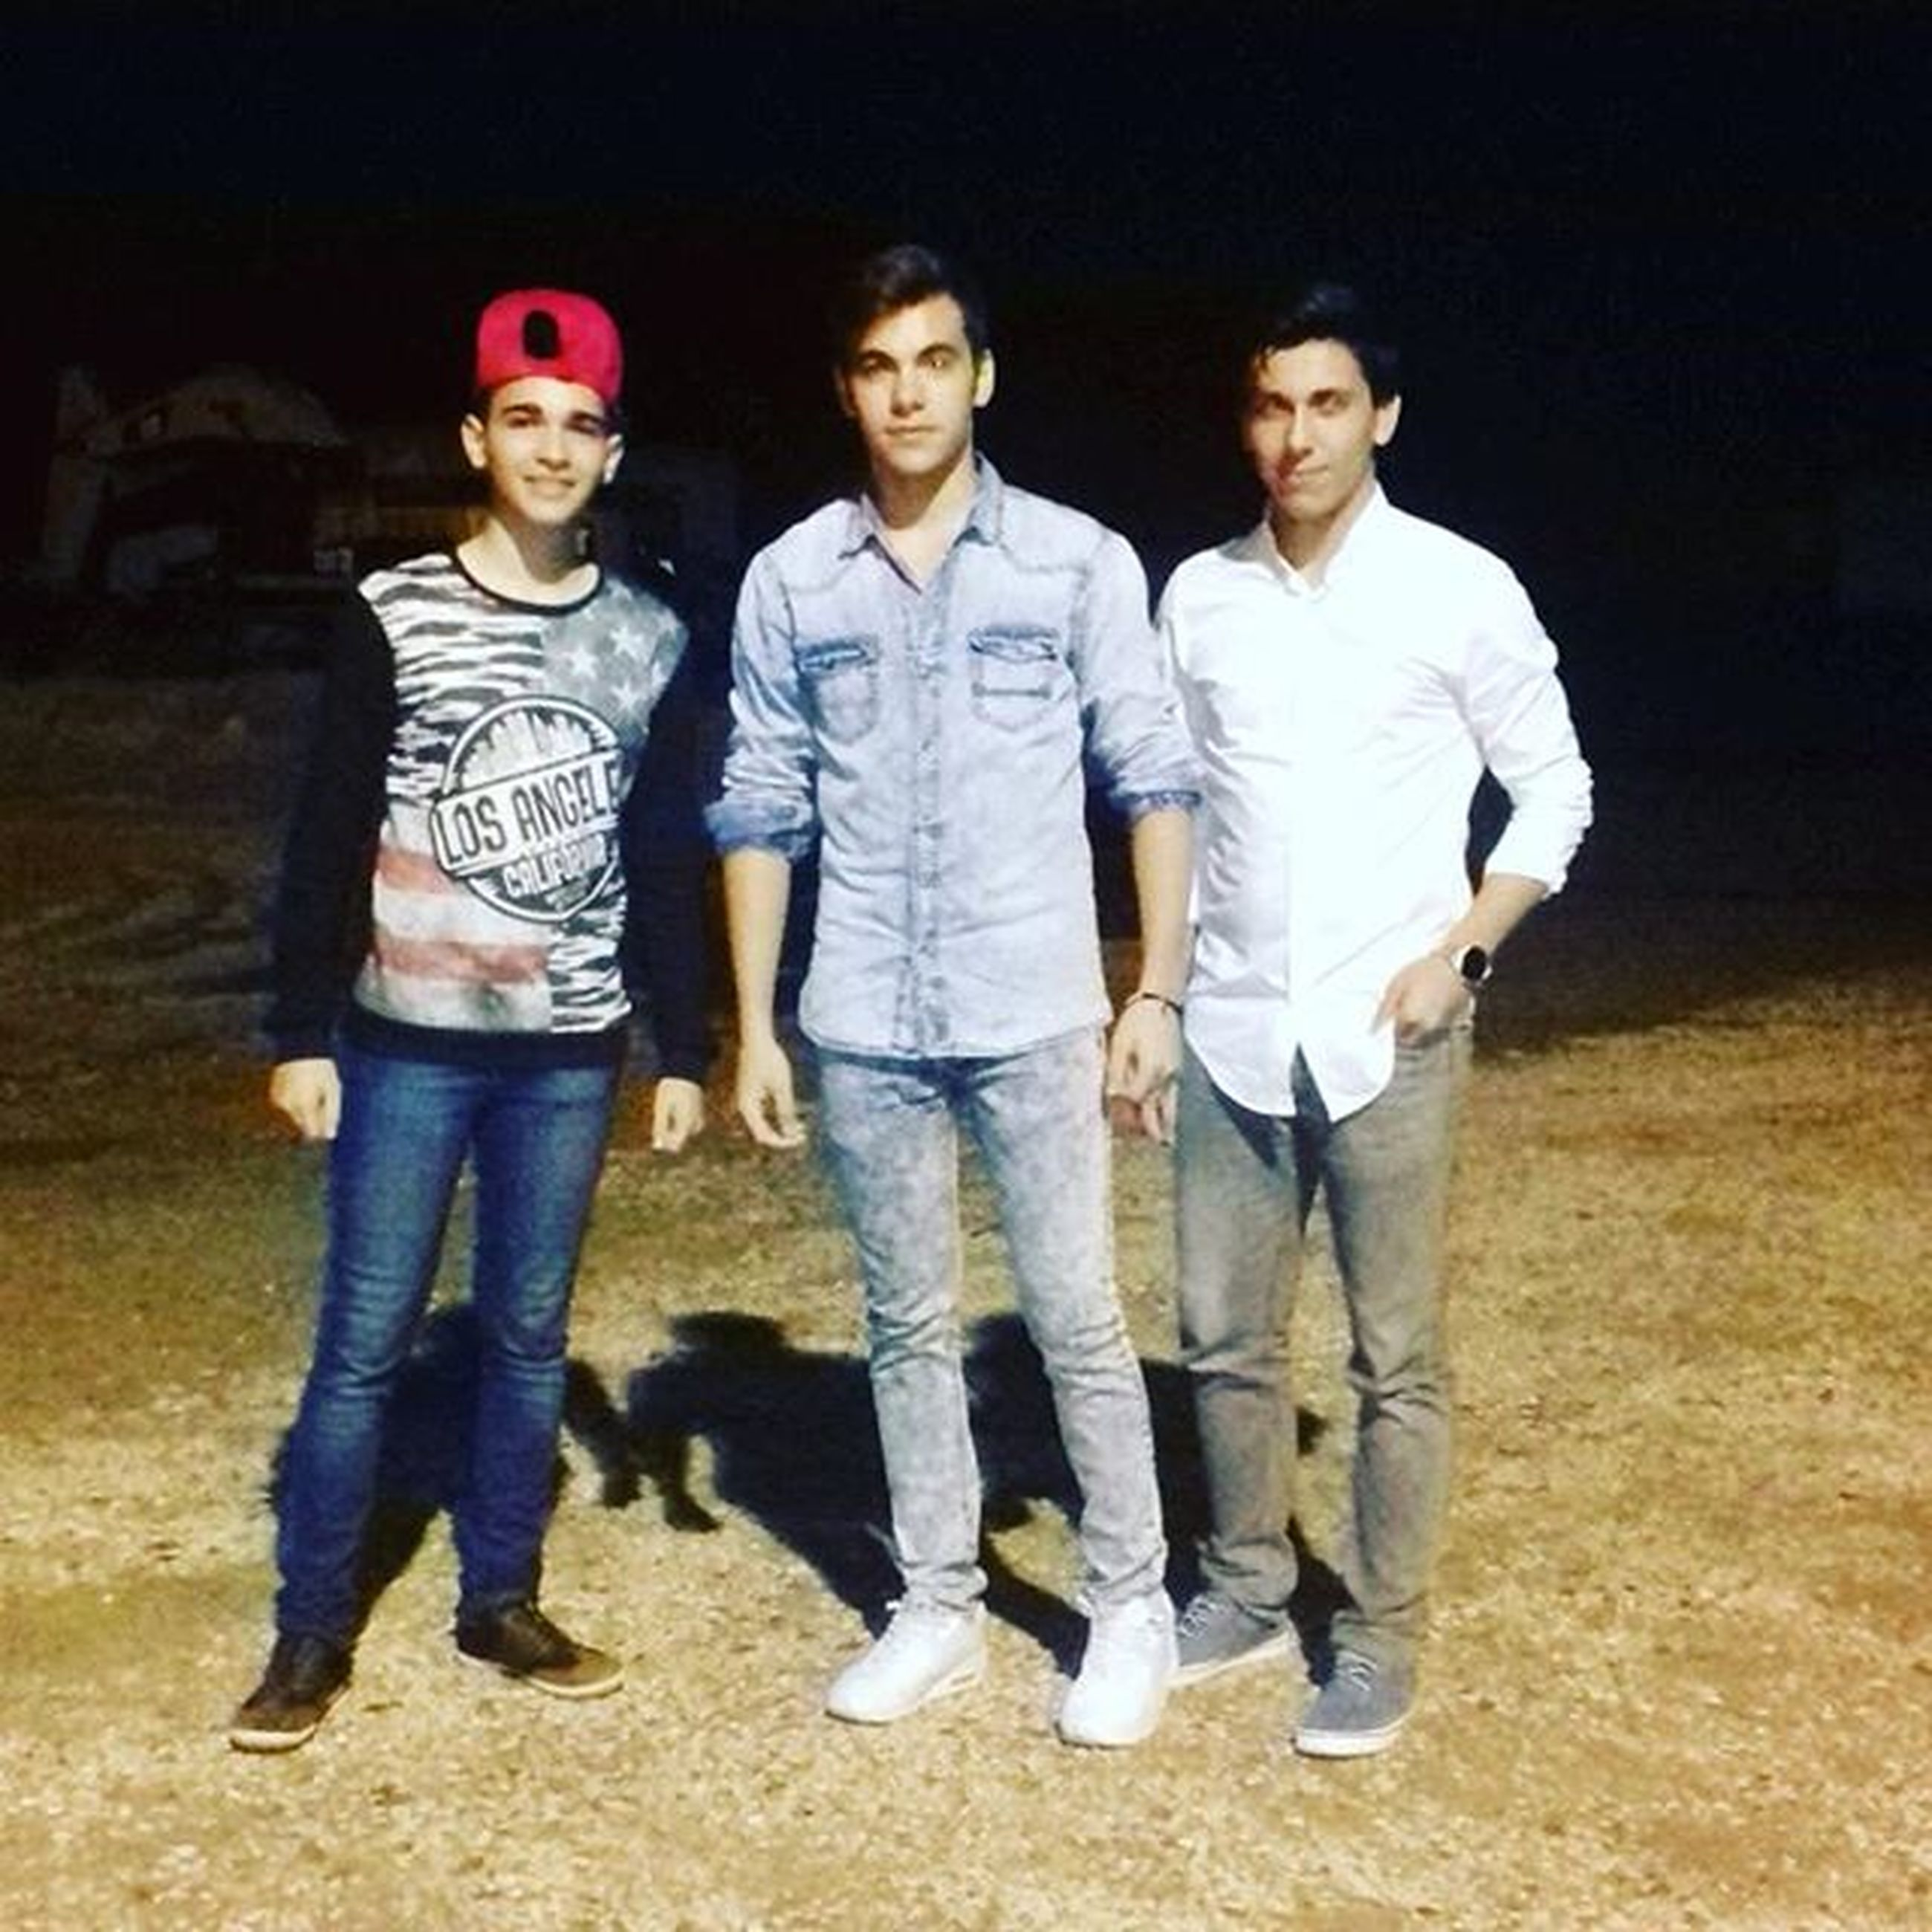 casual clothing, togetherness, lifestyles, full length, standing, leisure activity, bonding, childhood, person, front view, boys, love, elementary age, girls, looking at camera, portrait, friendship